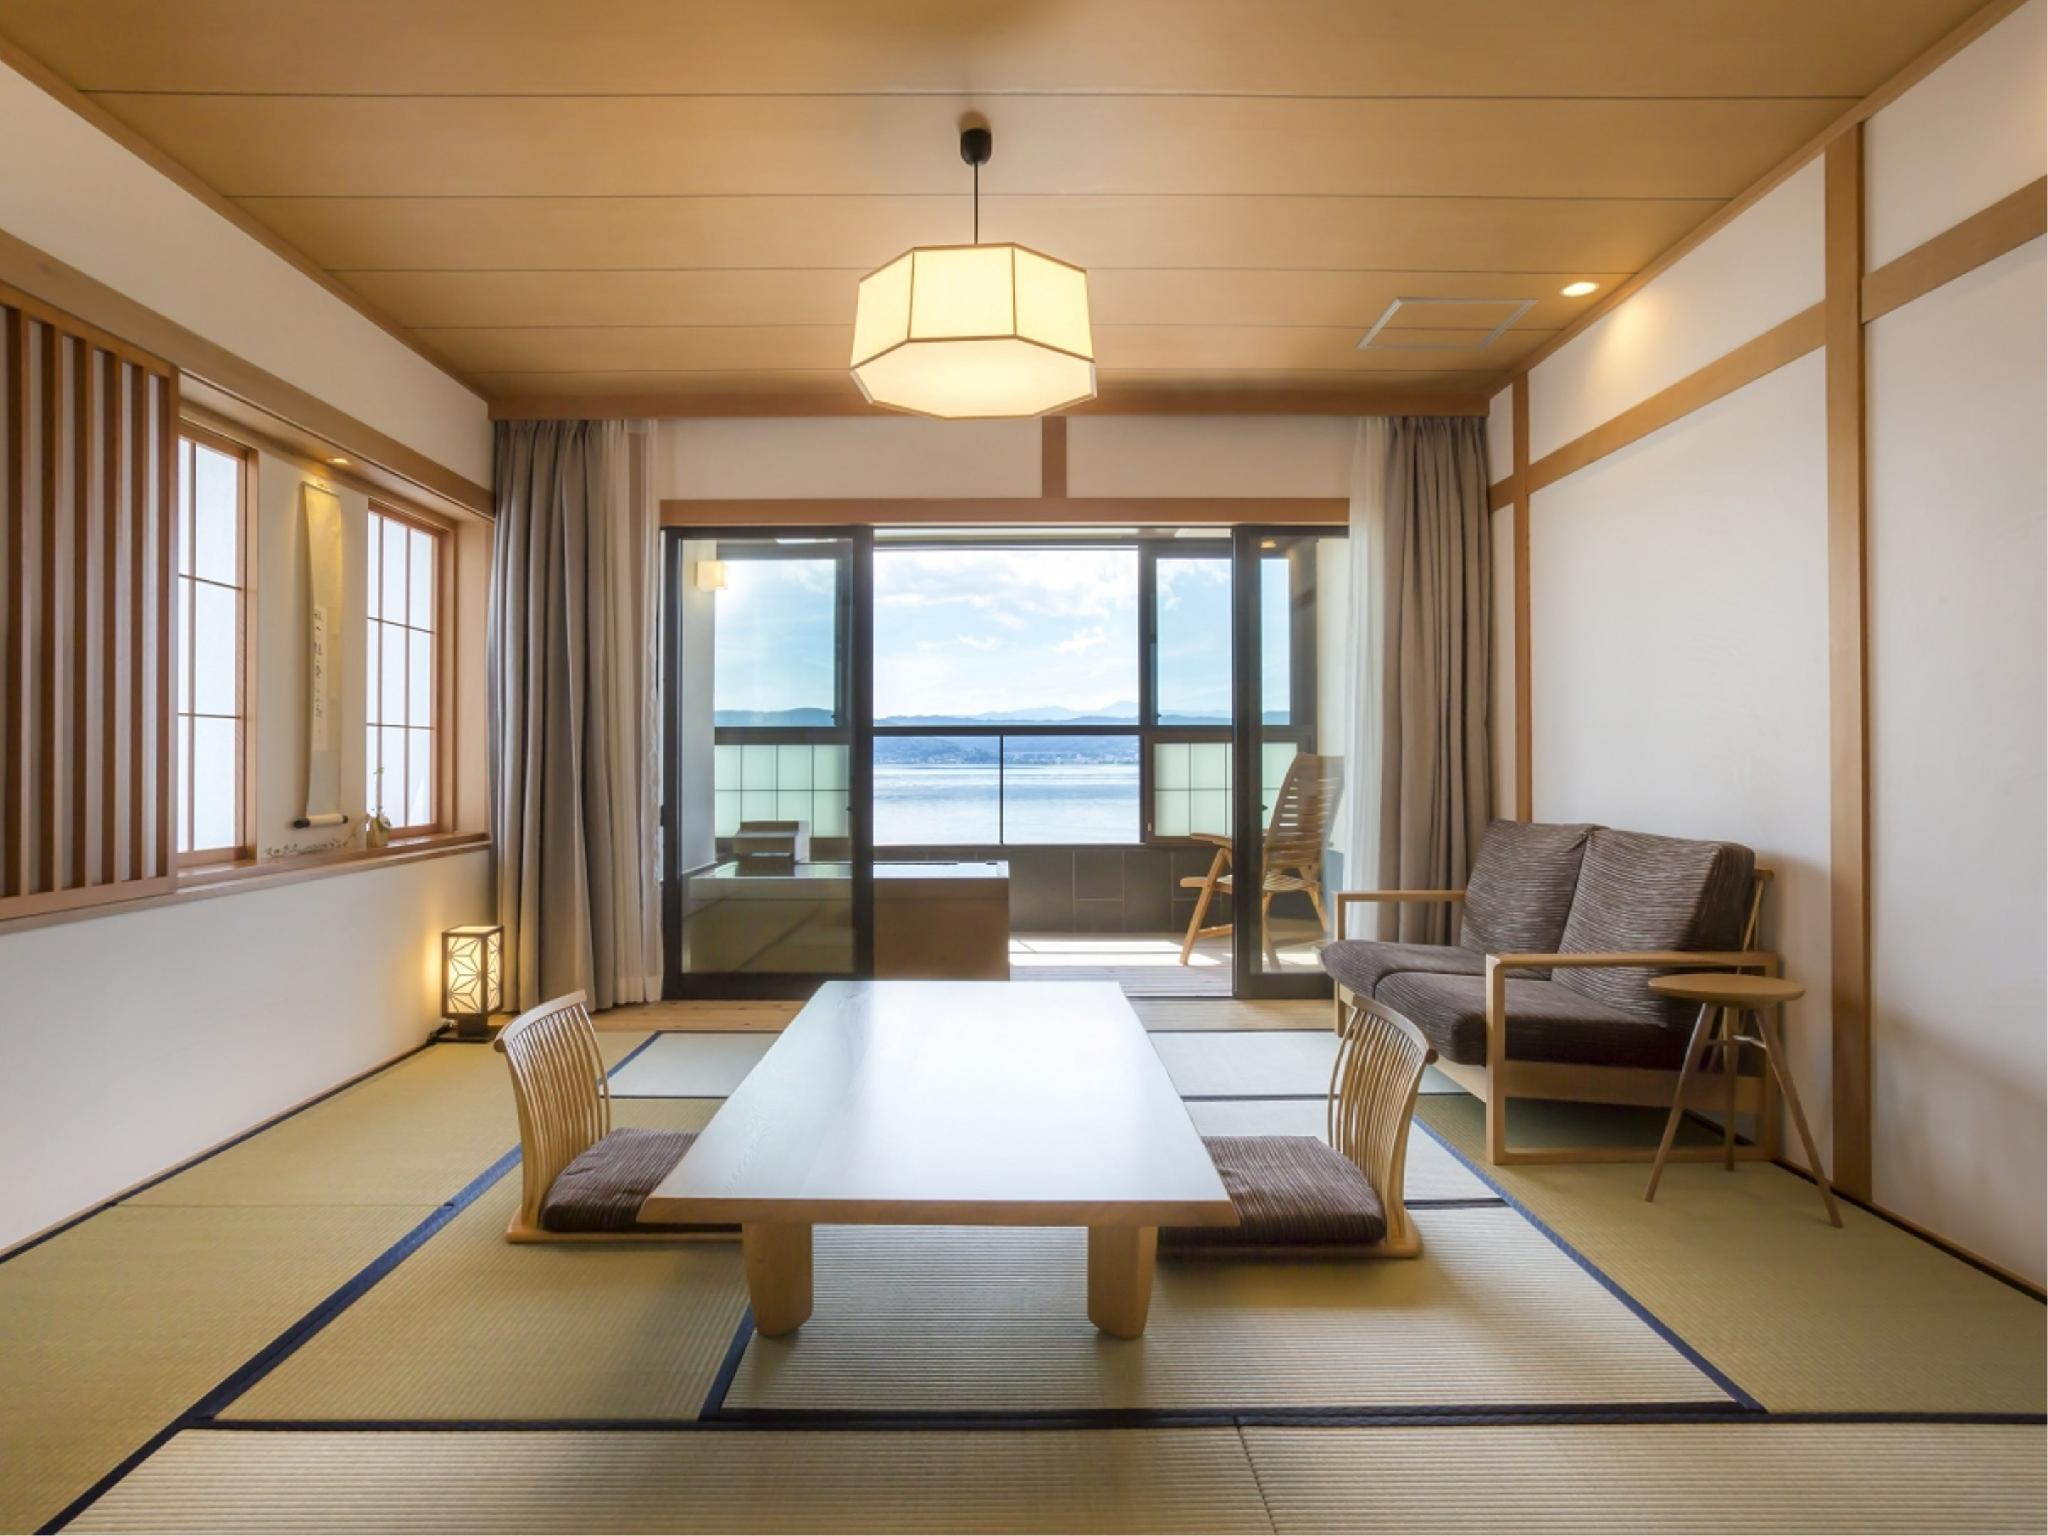 【薄雪草】源泉露天風呂付客室 ワイドタイプ4階 401|75平米 (Wide Japanese/Western-style Room with Open-air Hot Spring Bath (Usuyukiso Type, No. 401))